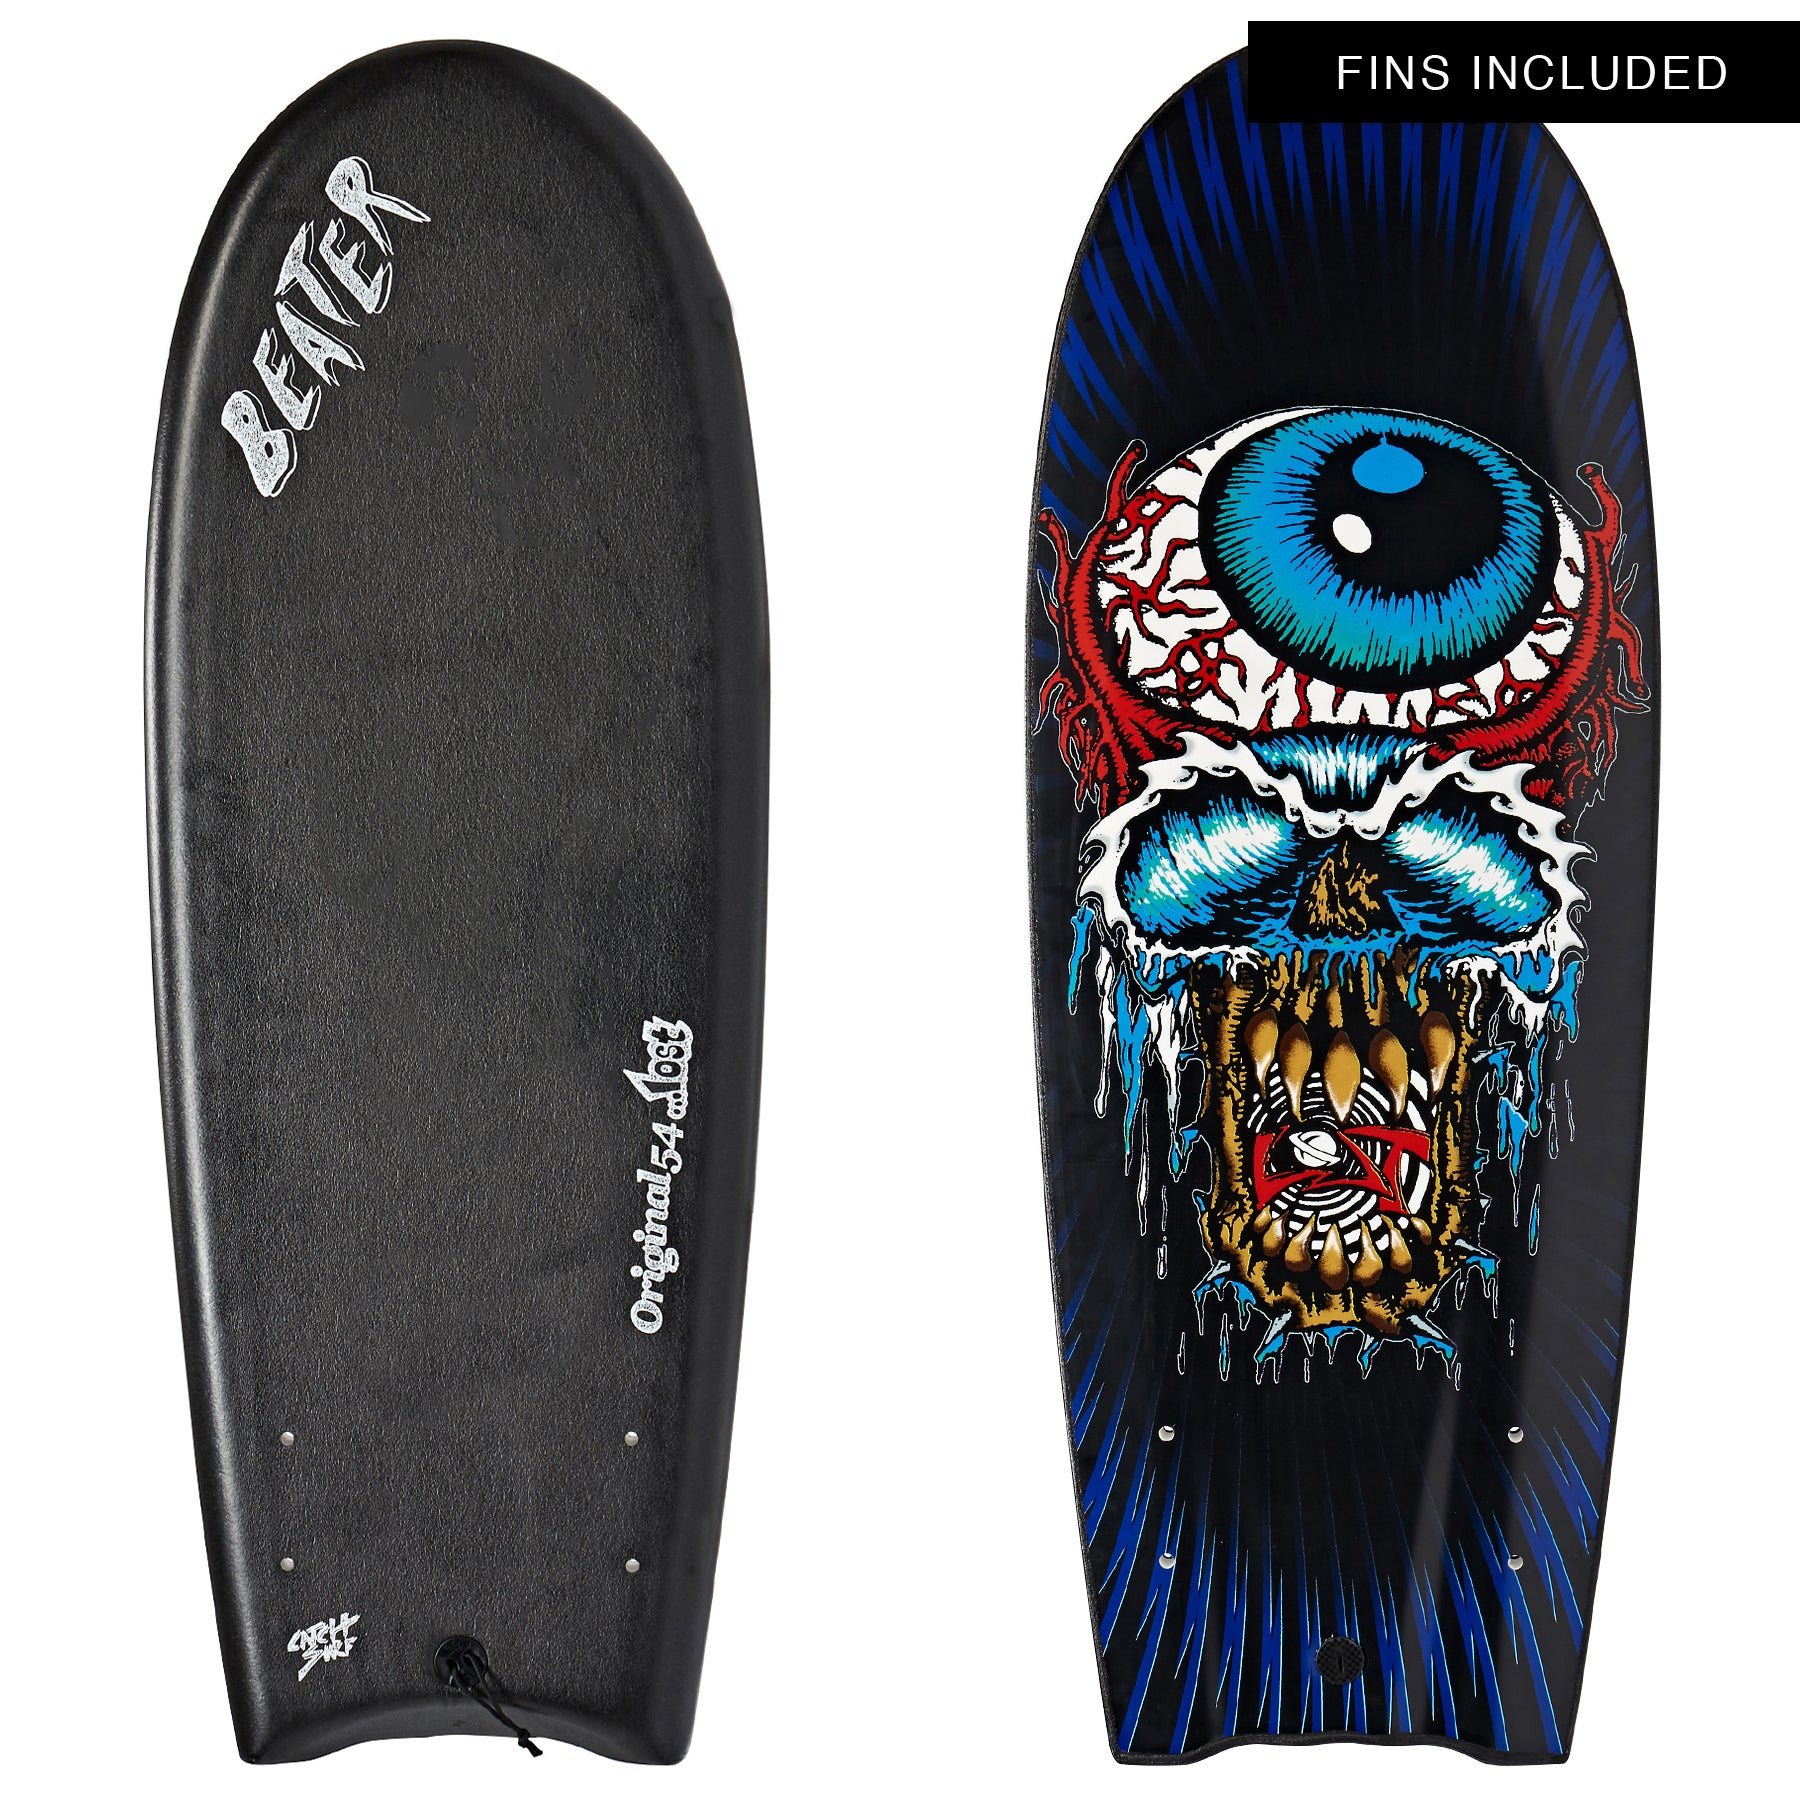 Catch Surf Beater Original Twin Fin Lost Edition 3 Surfboard - Black